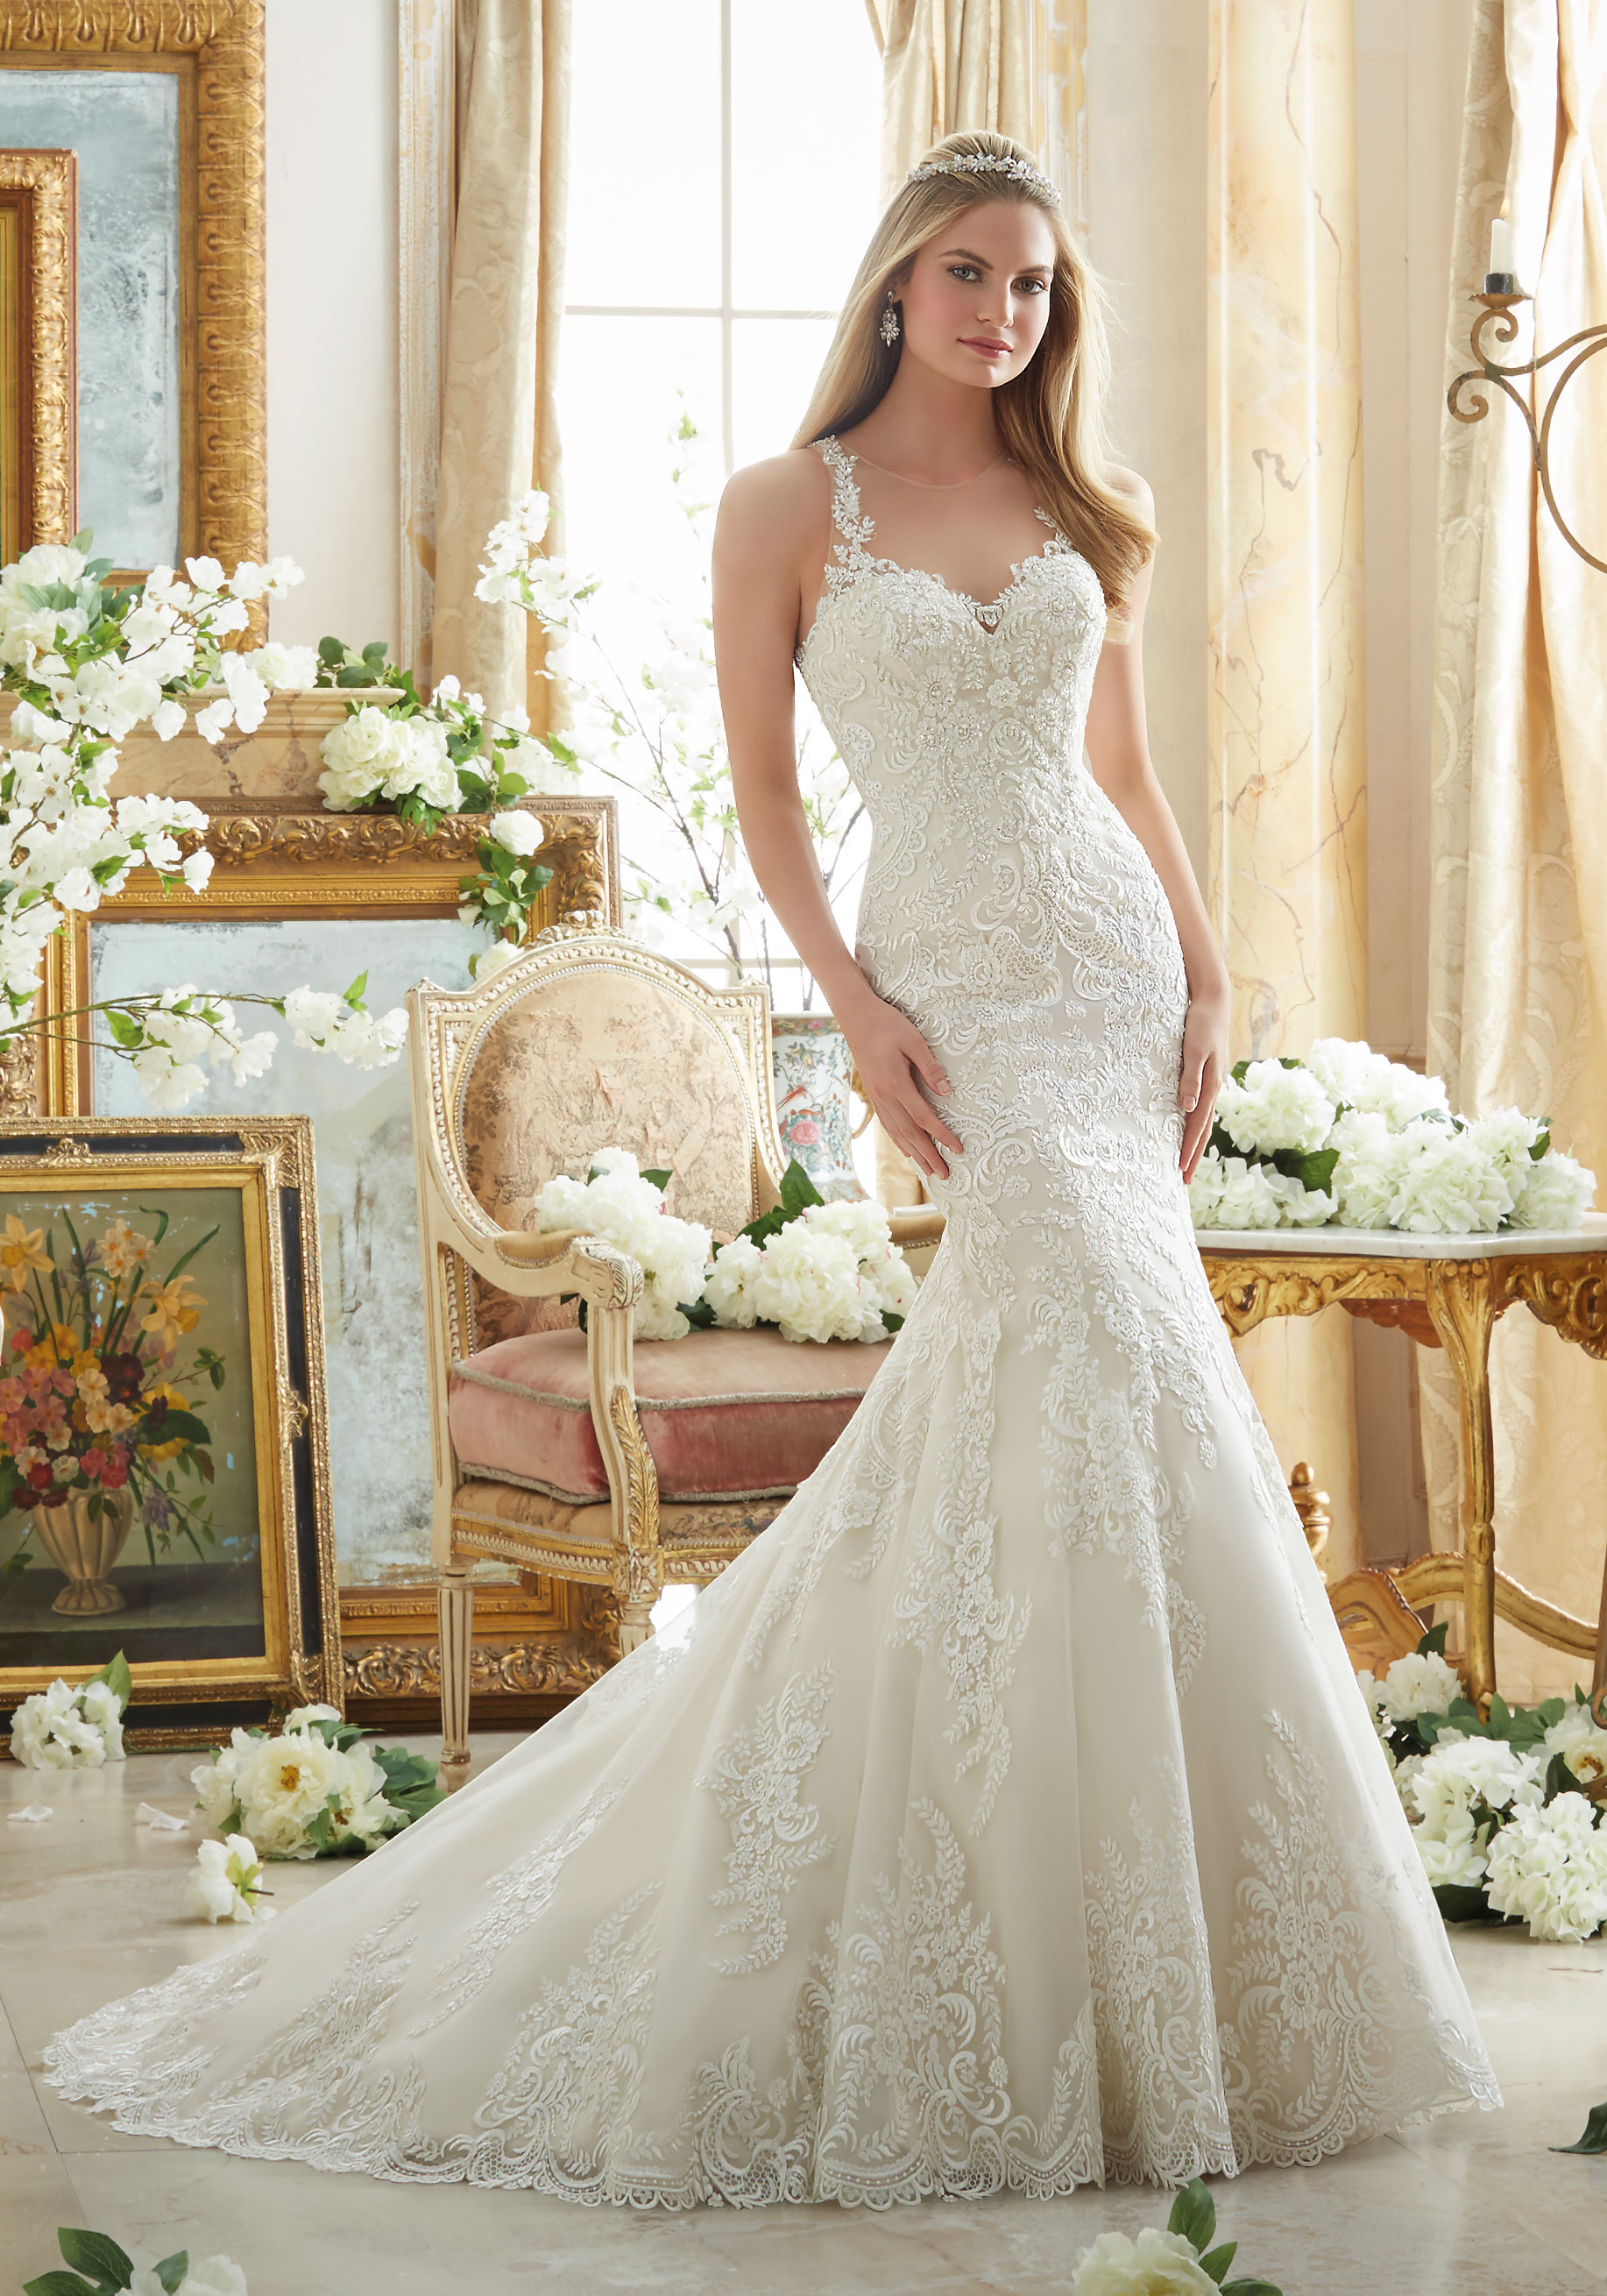 Mori Lee Wedding Dress Prices - Wedding Photography